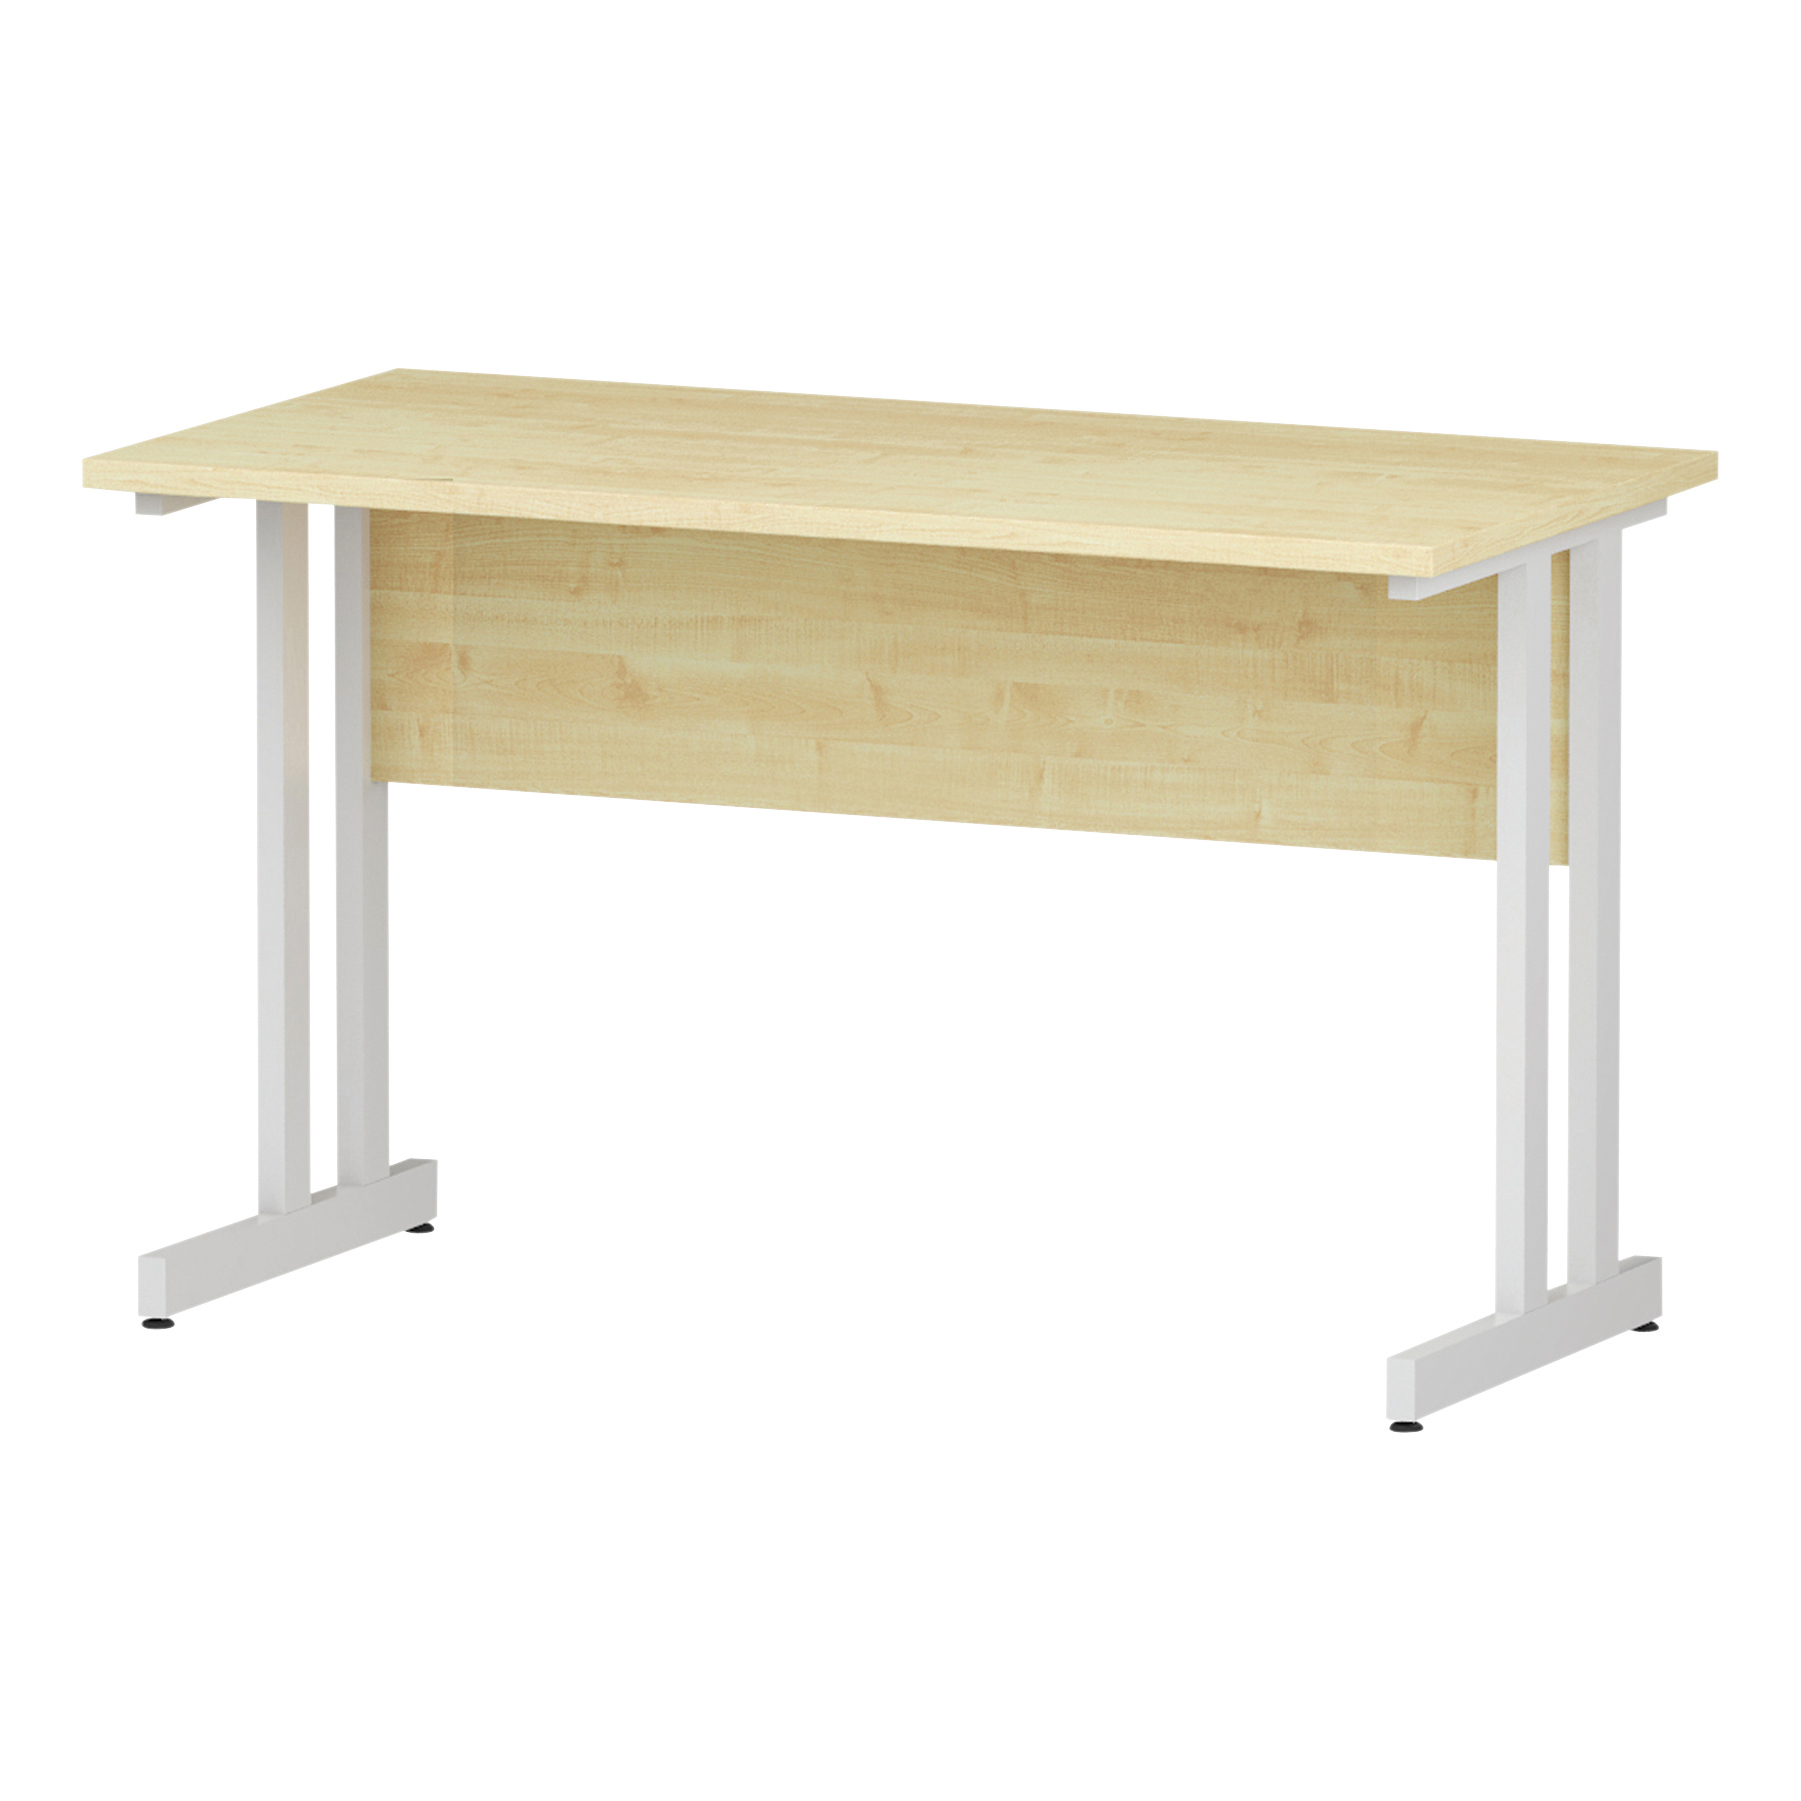 Trexus Rectangular Slim Desk White Cantilever Leg 1200x600mm Maple Ref I002427